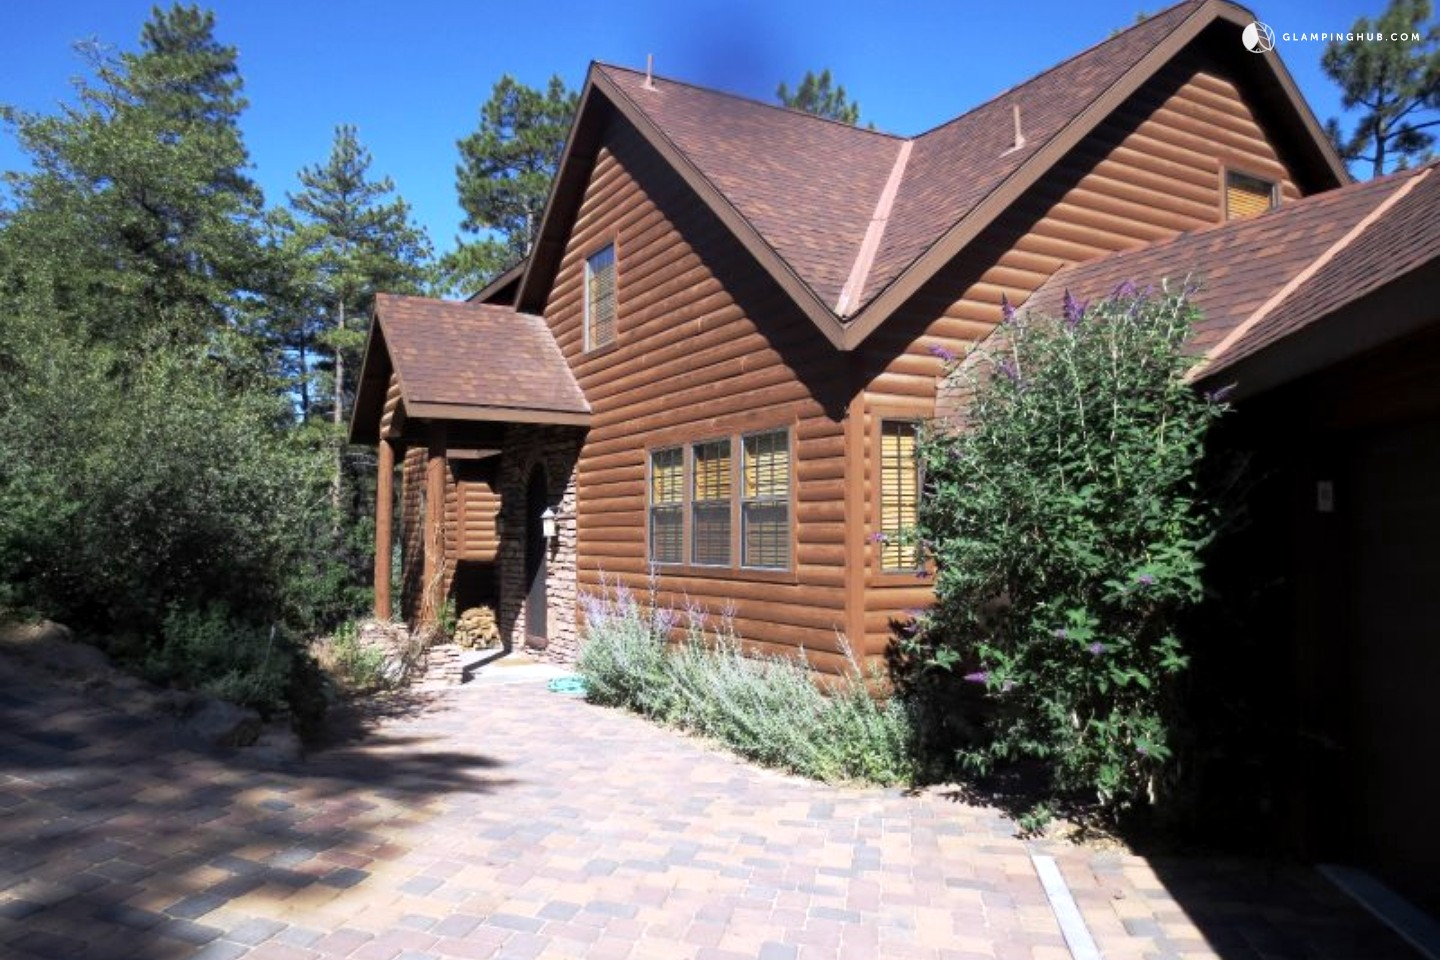 Log cabin in prescott arizona for Az cabin rentals with hot tub